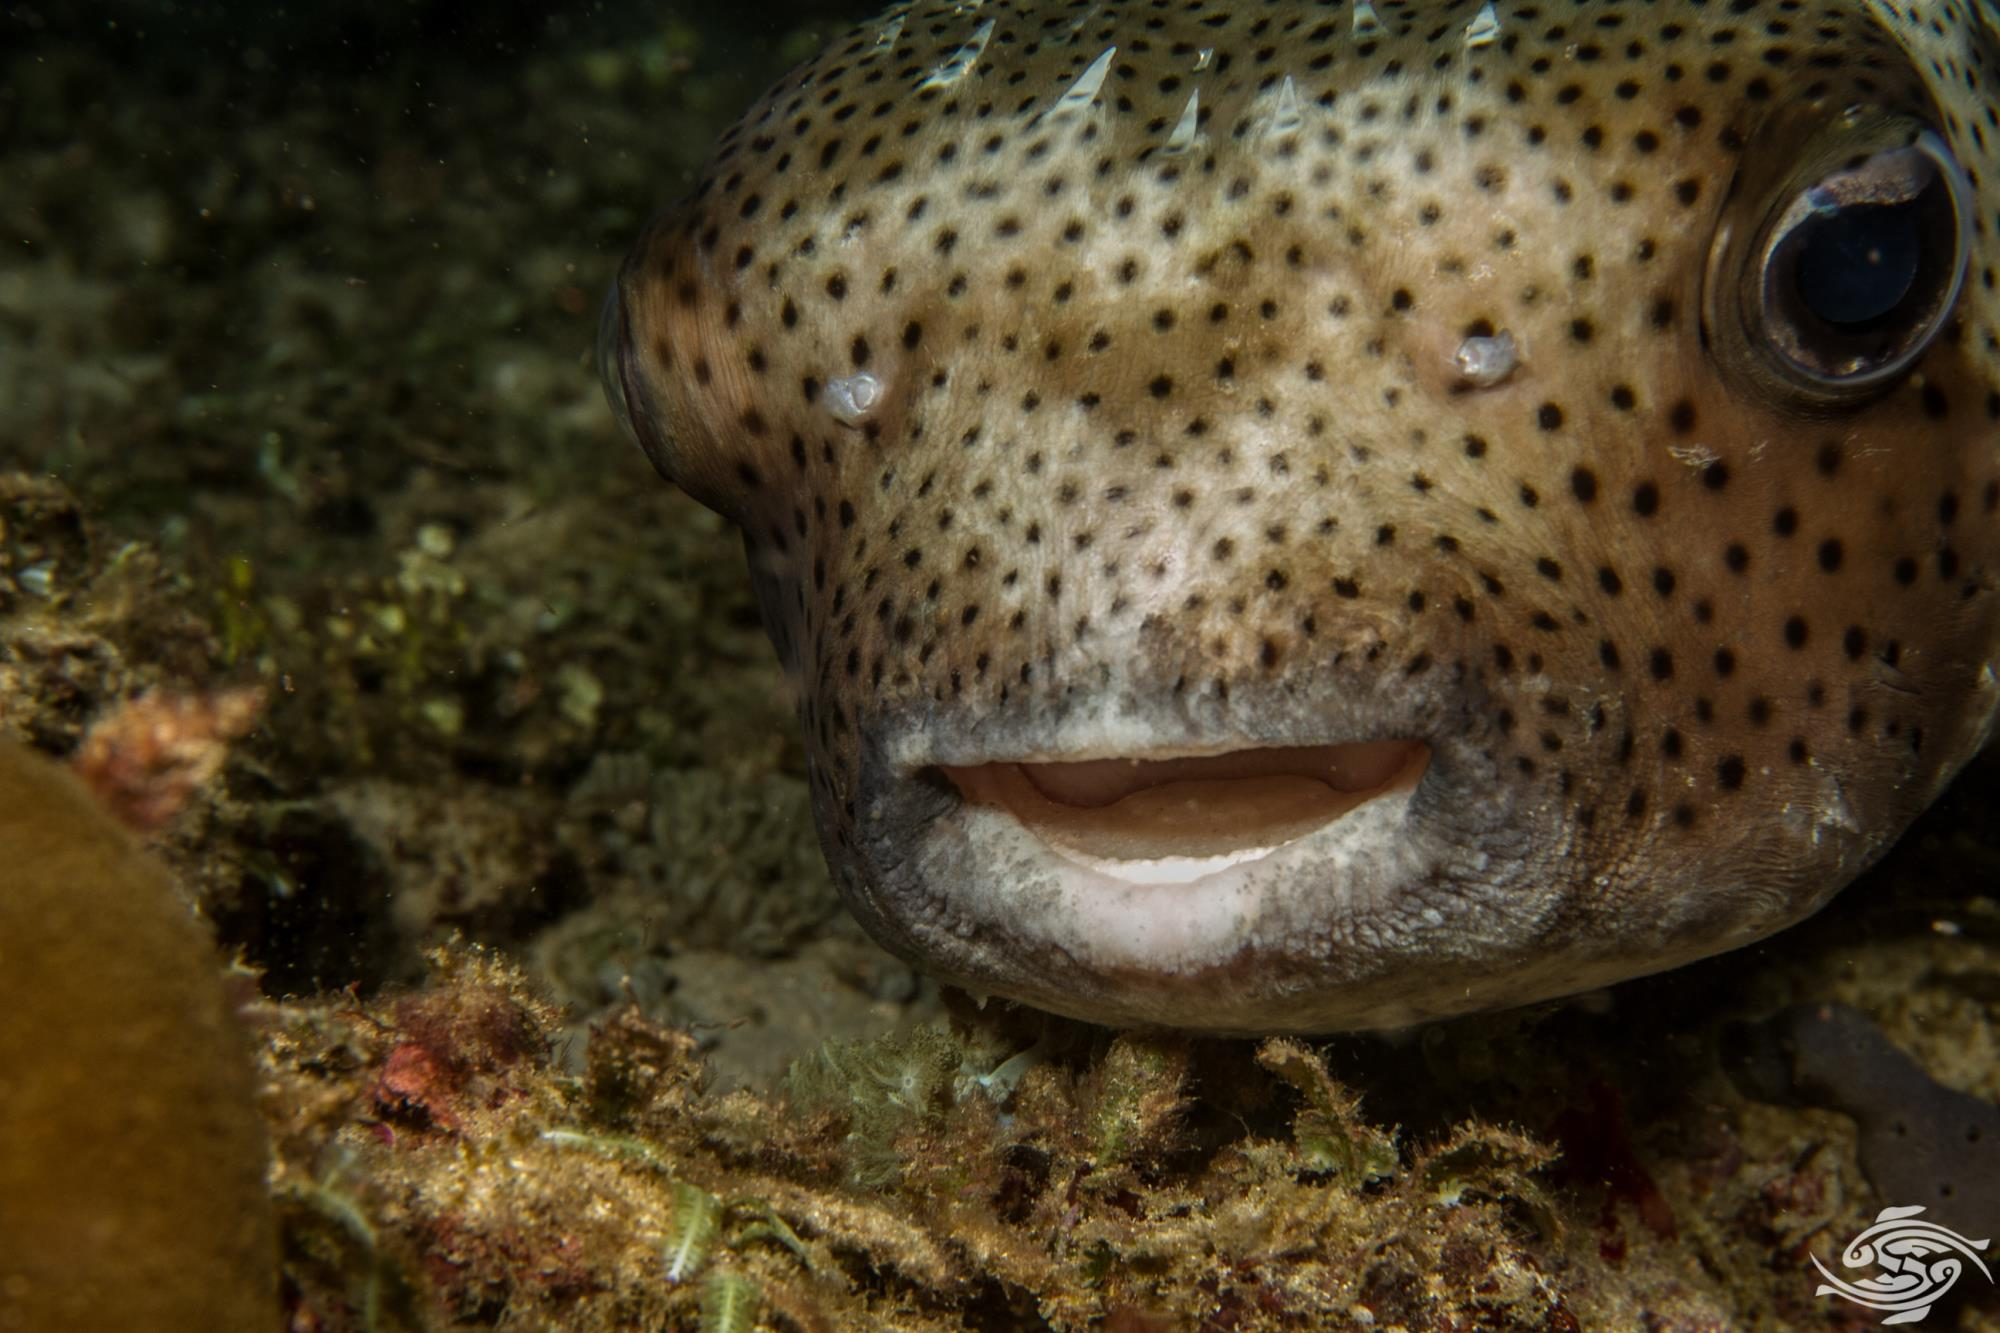 spot-fin porcupinefish (Diodon hystrix), also known as spotted porcupinefish, black-spotted porcupinefish or simply porcupinefish